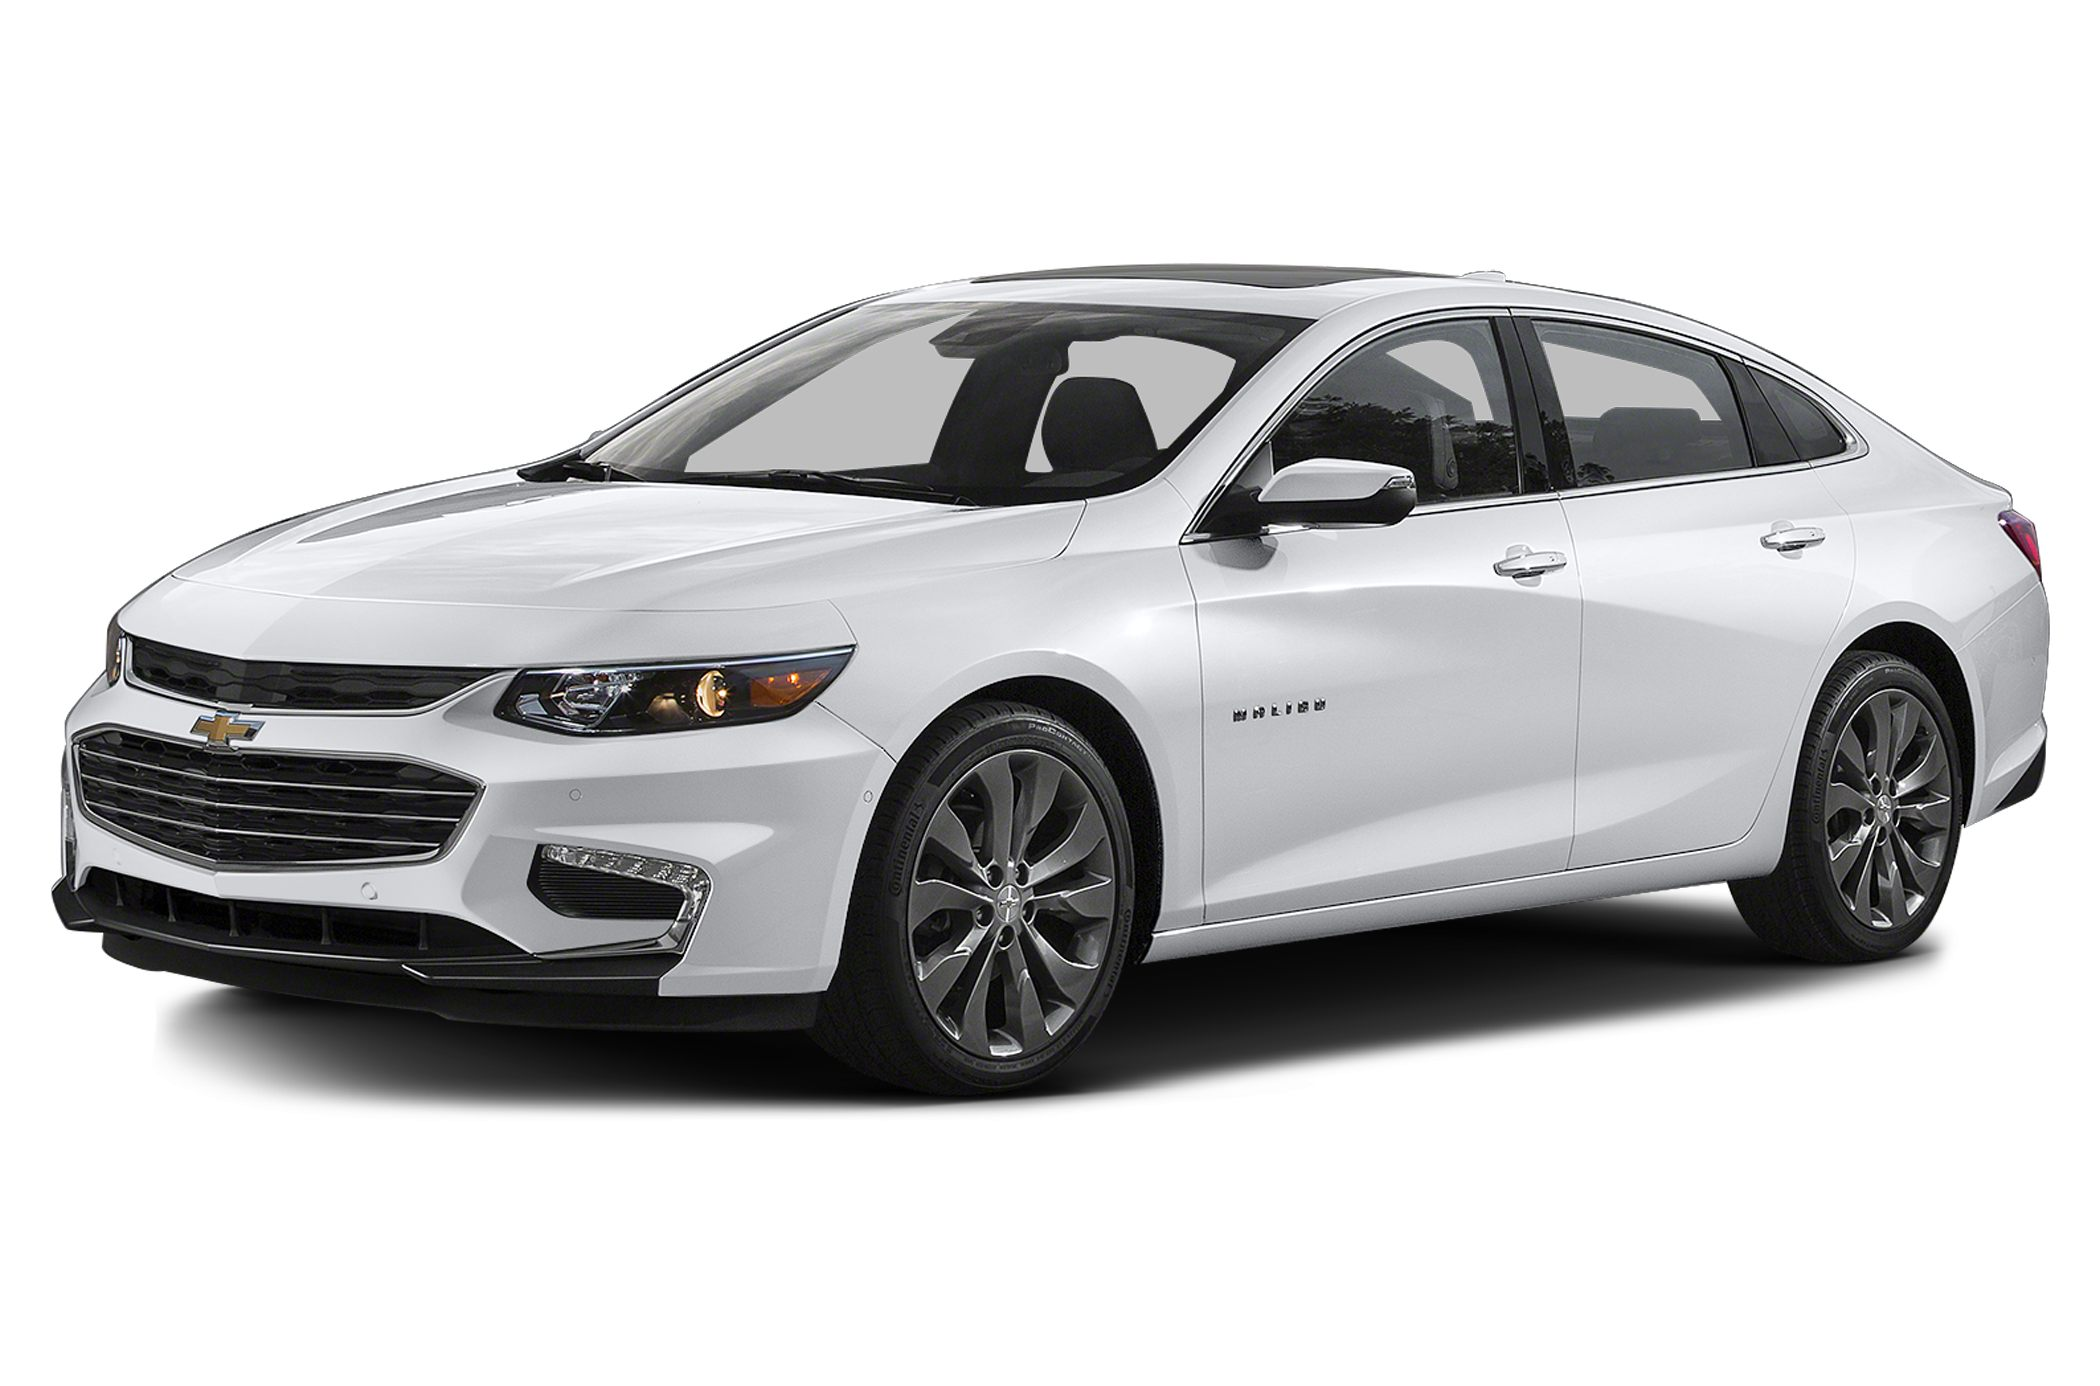 2016 chevrolet malibu first drive w video. Black Bedroom Furniture Sets. Home Design Ideas